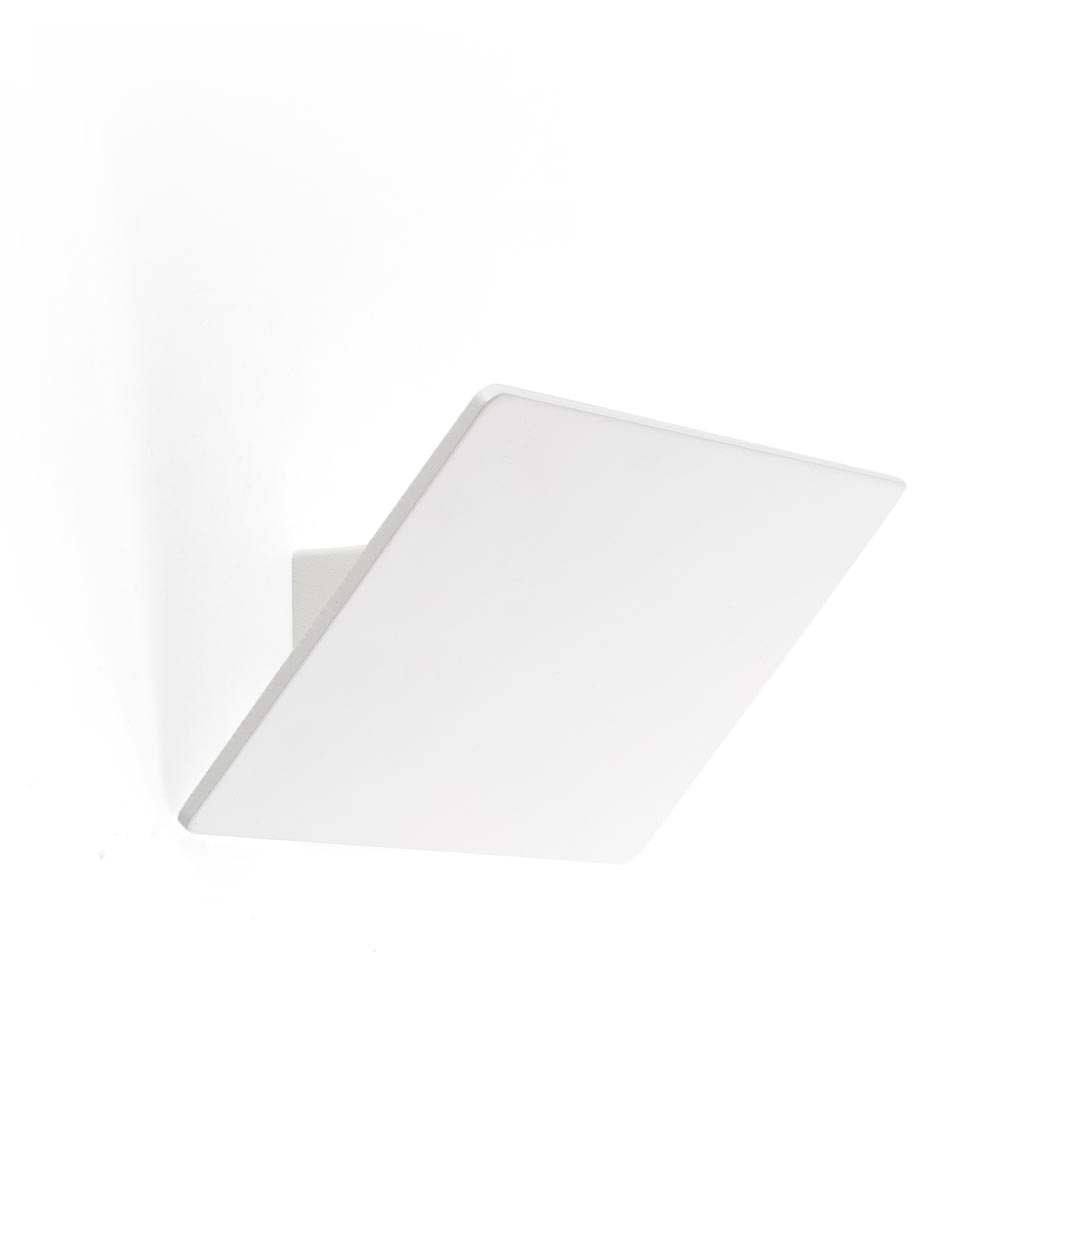 Aplique de pared LED DALLAS blanco detalle